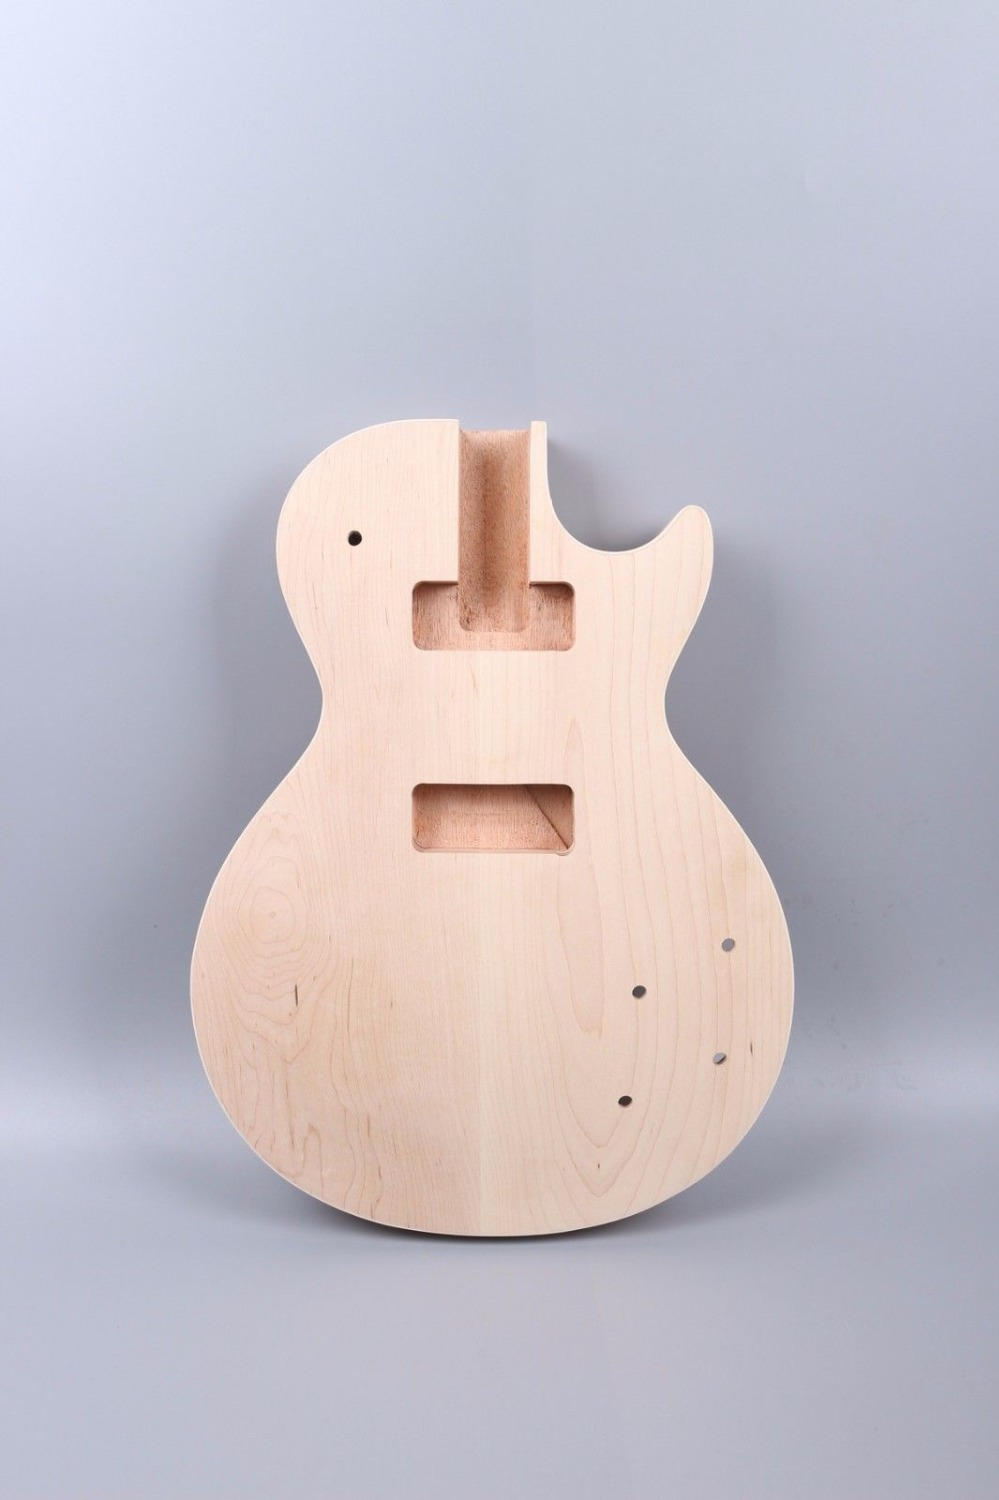 New Electric Guitar Body Replacement Mahogany Wood Guitar Body Electric Guitar Parts Accessory P90 Pickup цена